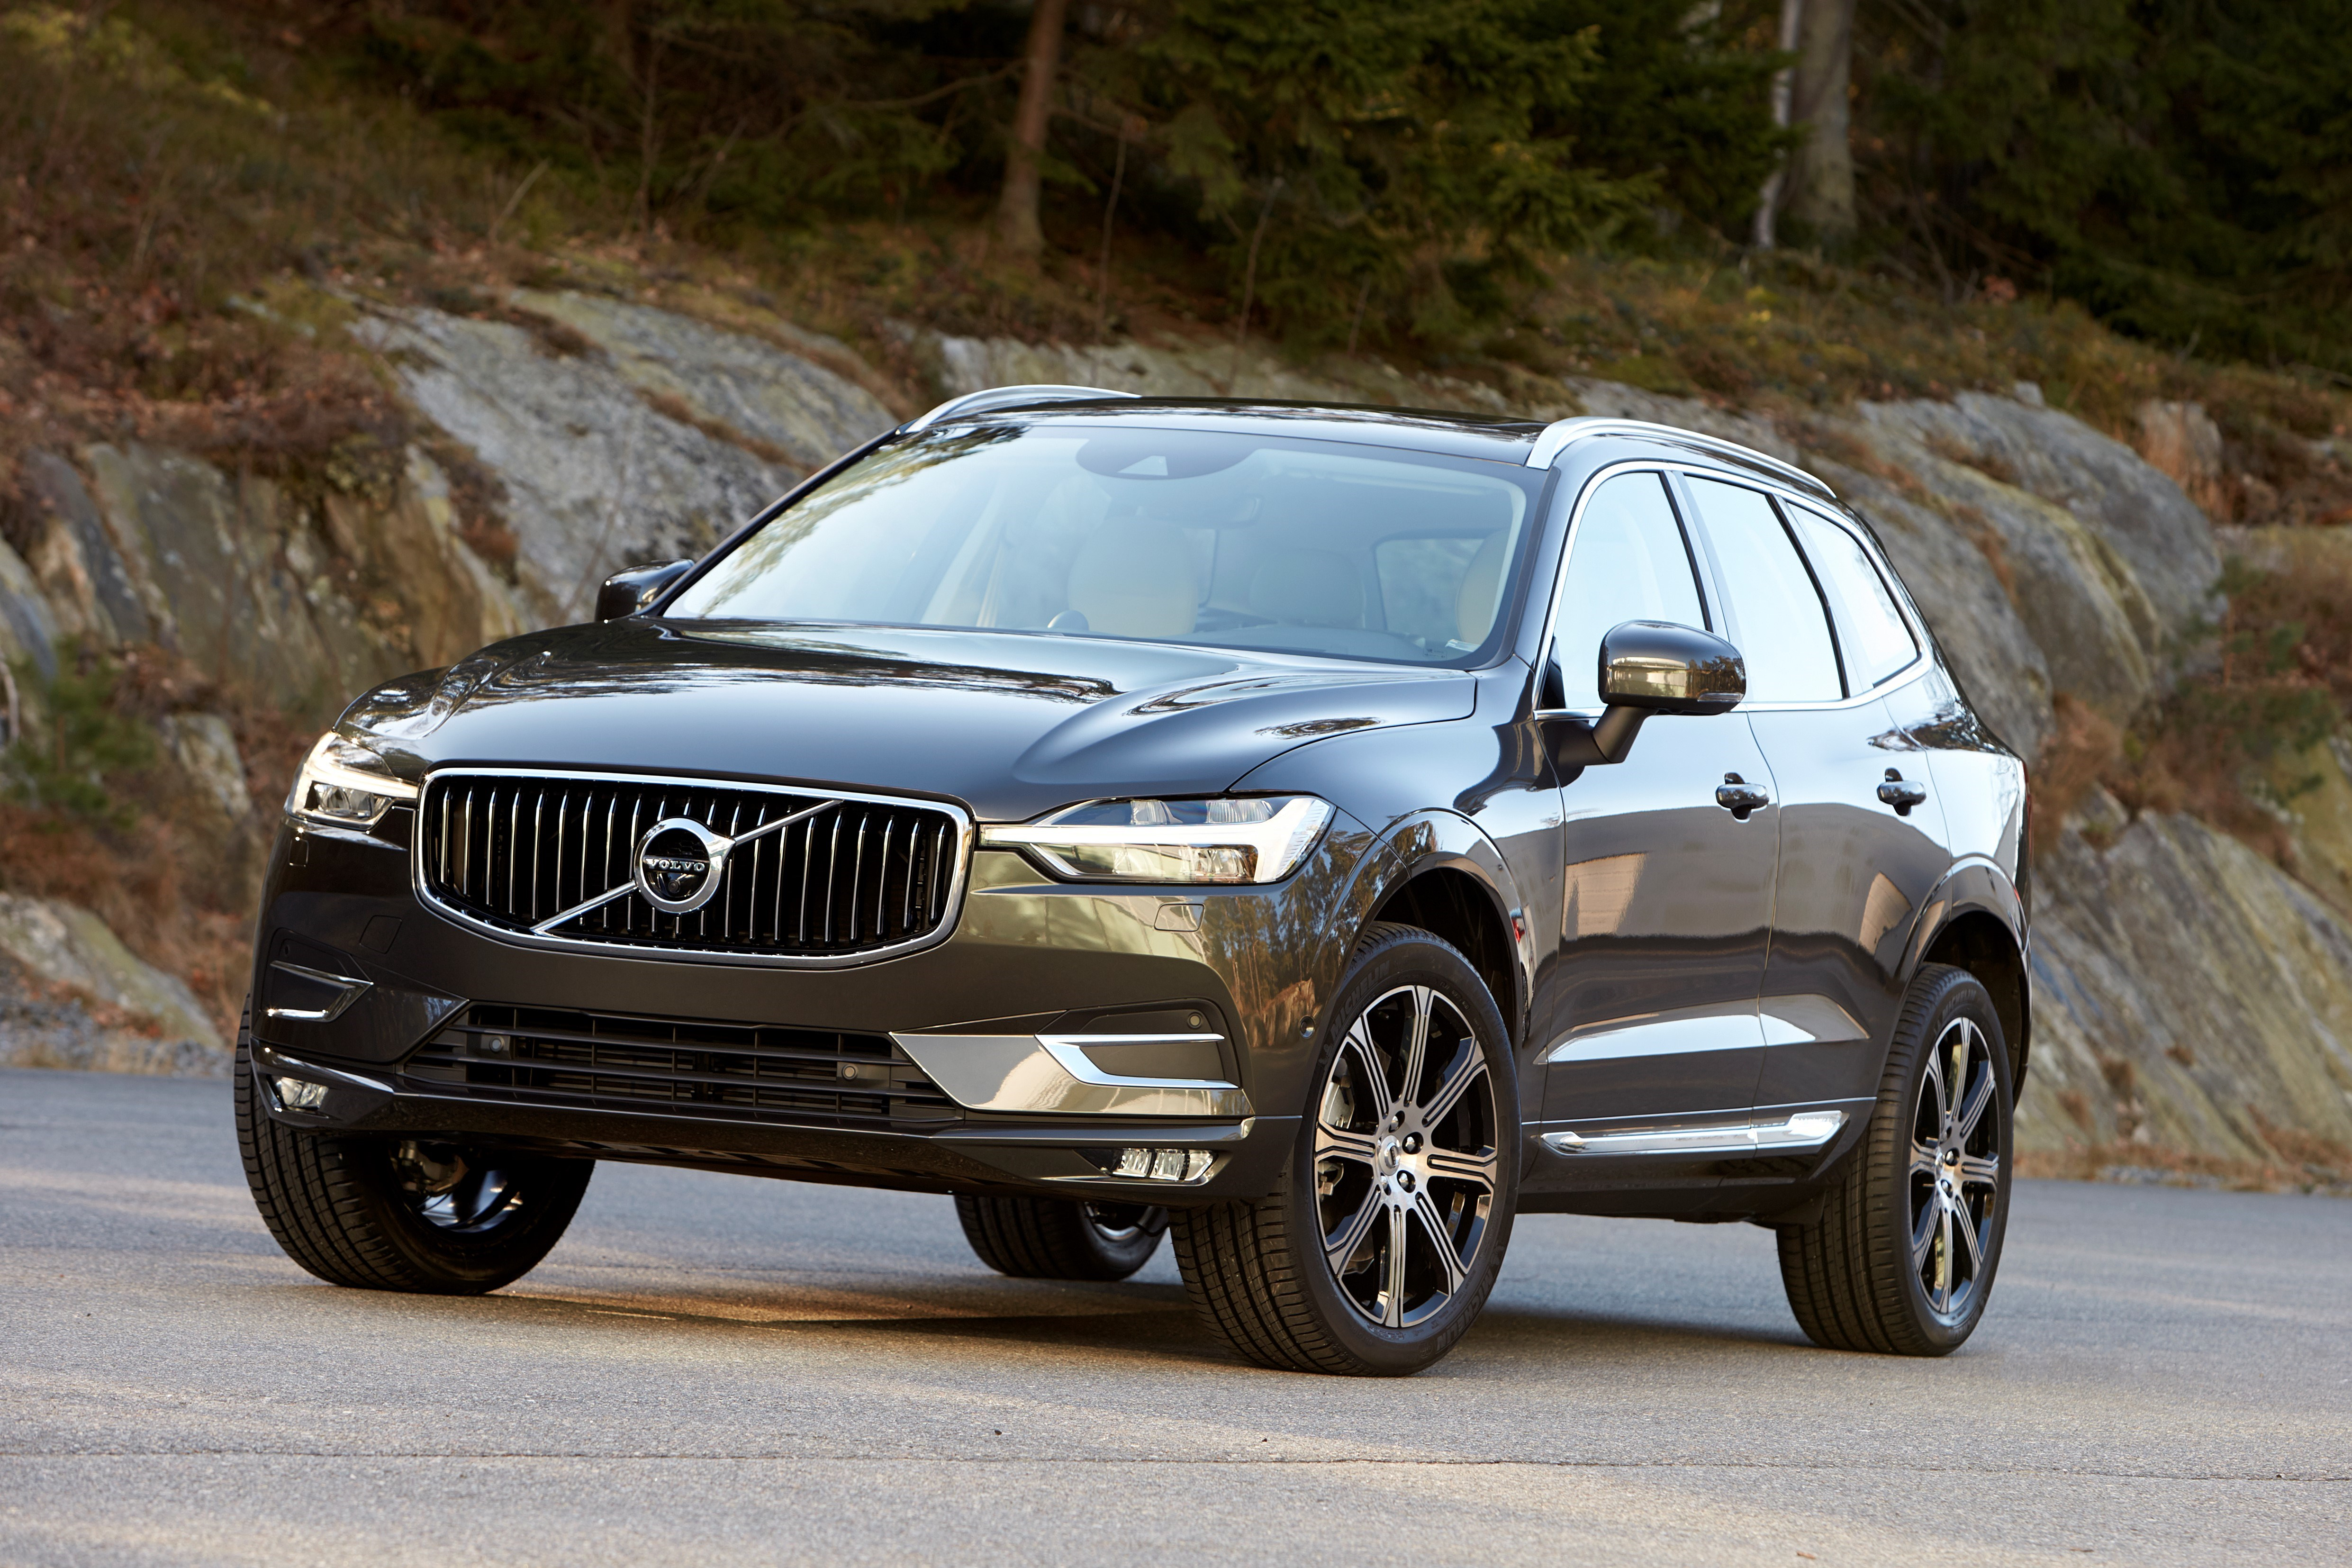 2018 Volvo Xc60 Unveiled 407 Hp T8 Plug In Hybrid Image